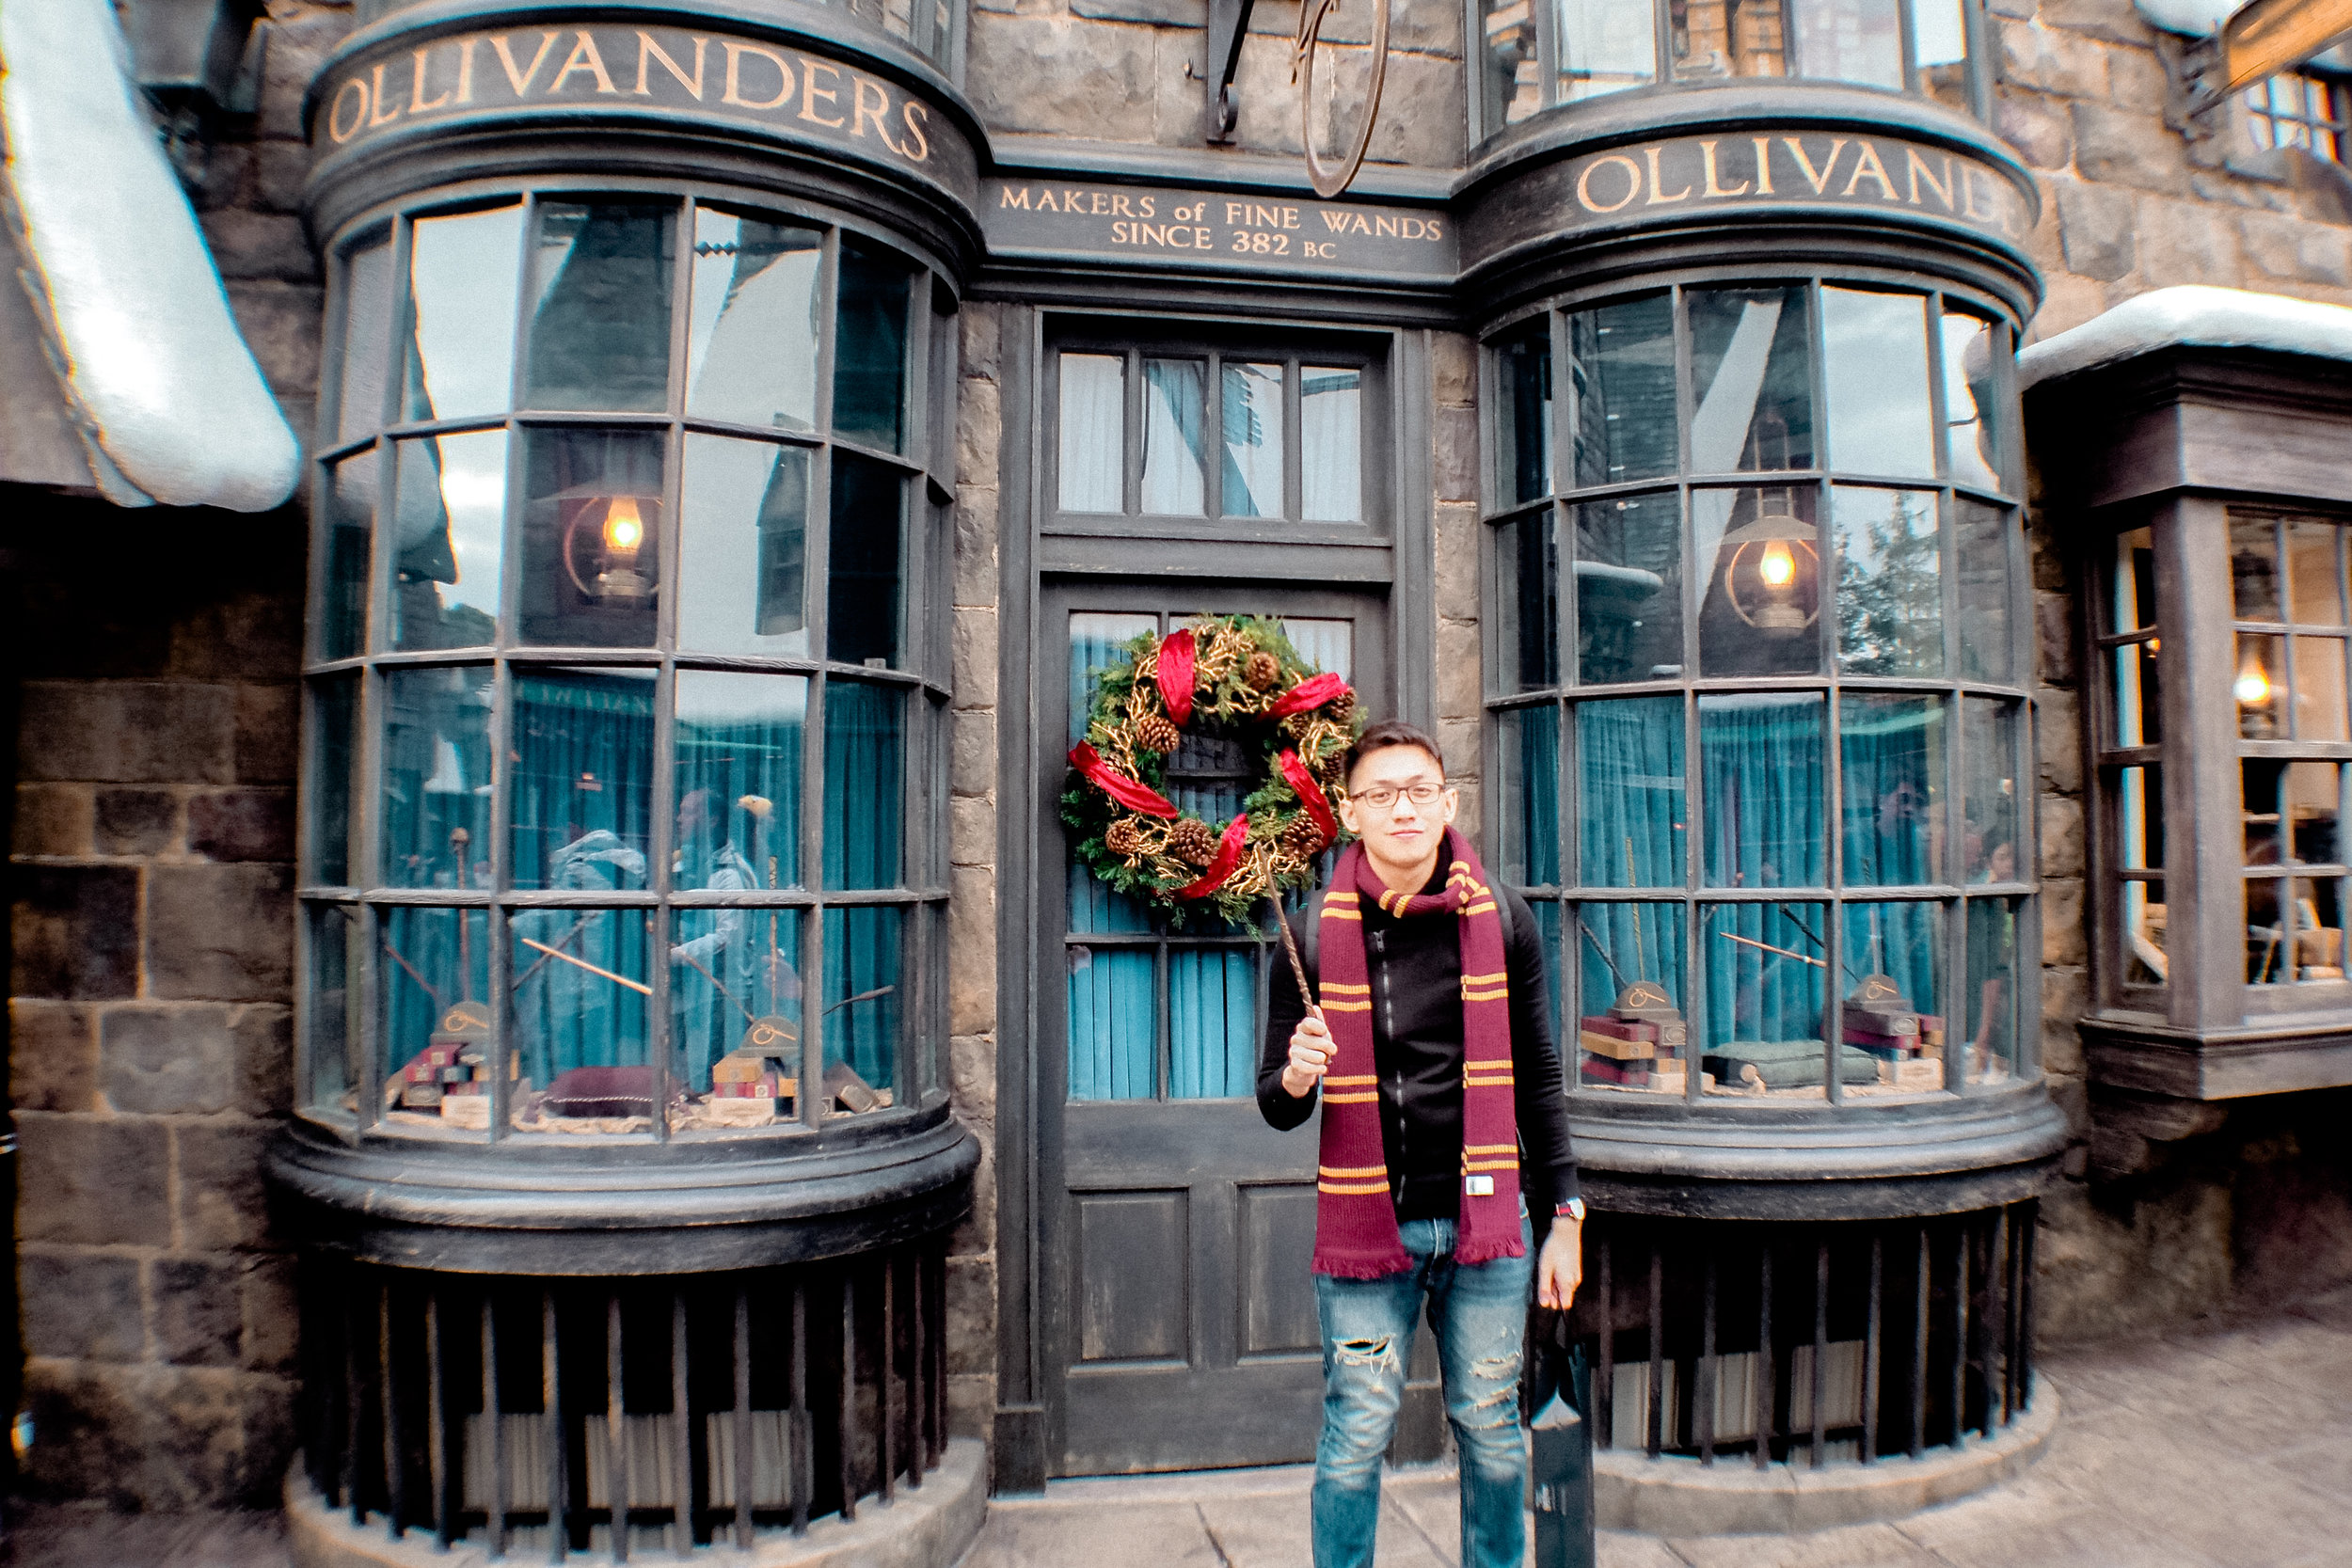 Ollivanders, where wizards and witches get their first wands. I know we are muggles, but it's just apt that we got ours here, too! Haha! This place is also an attraction, you'll experience here how Harry got his first wand. Complete with special effects!